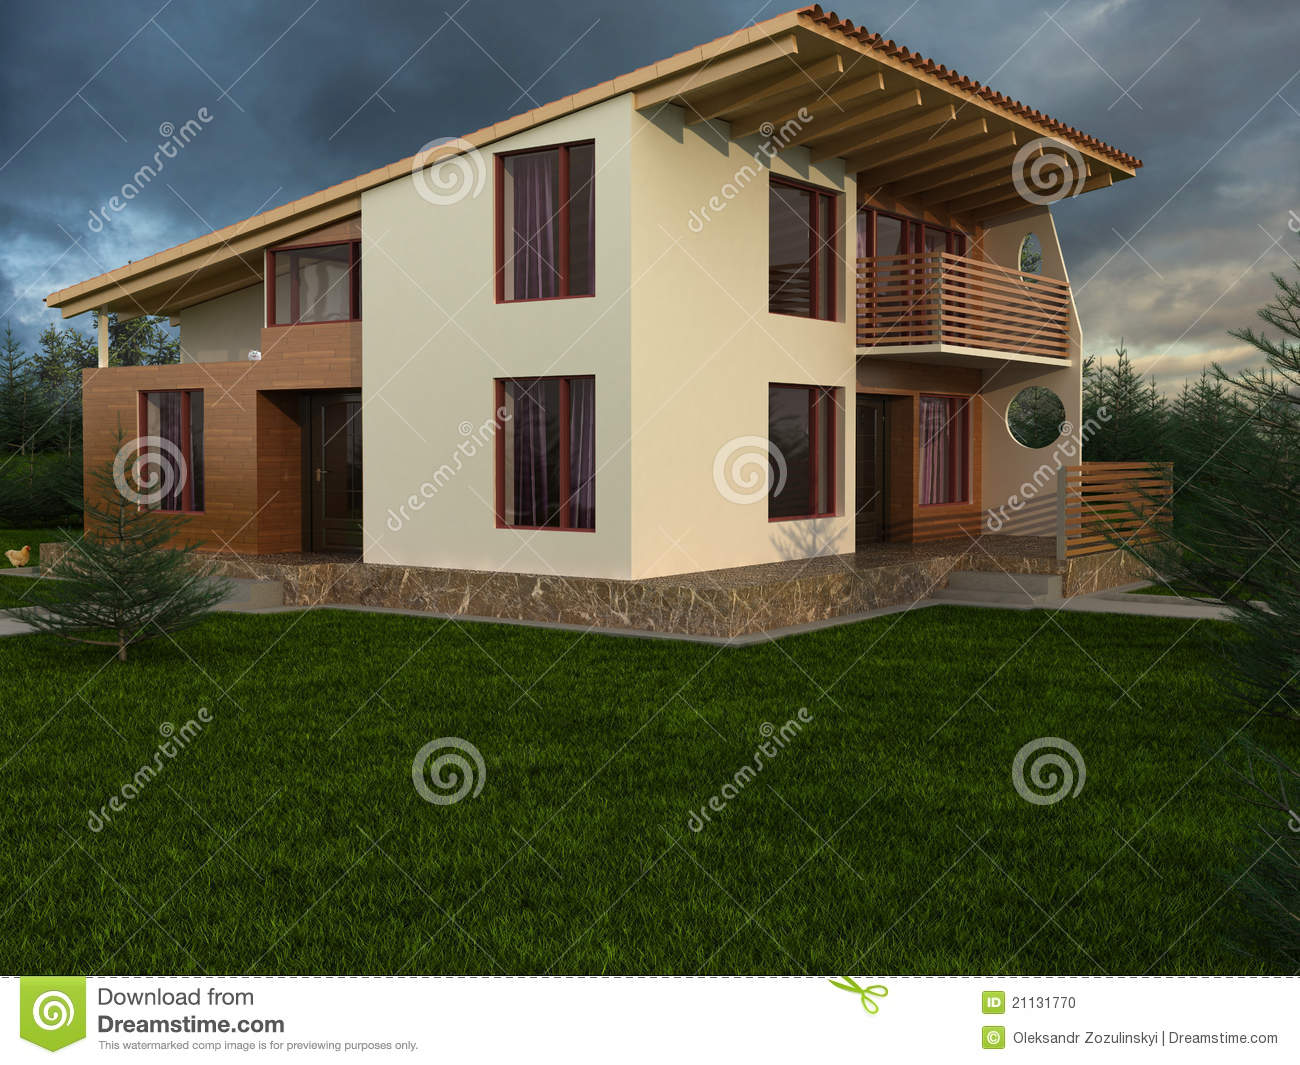 he House With Sloping oof Stock Photo - Image: 21131770 - ^